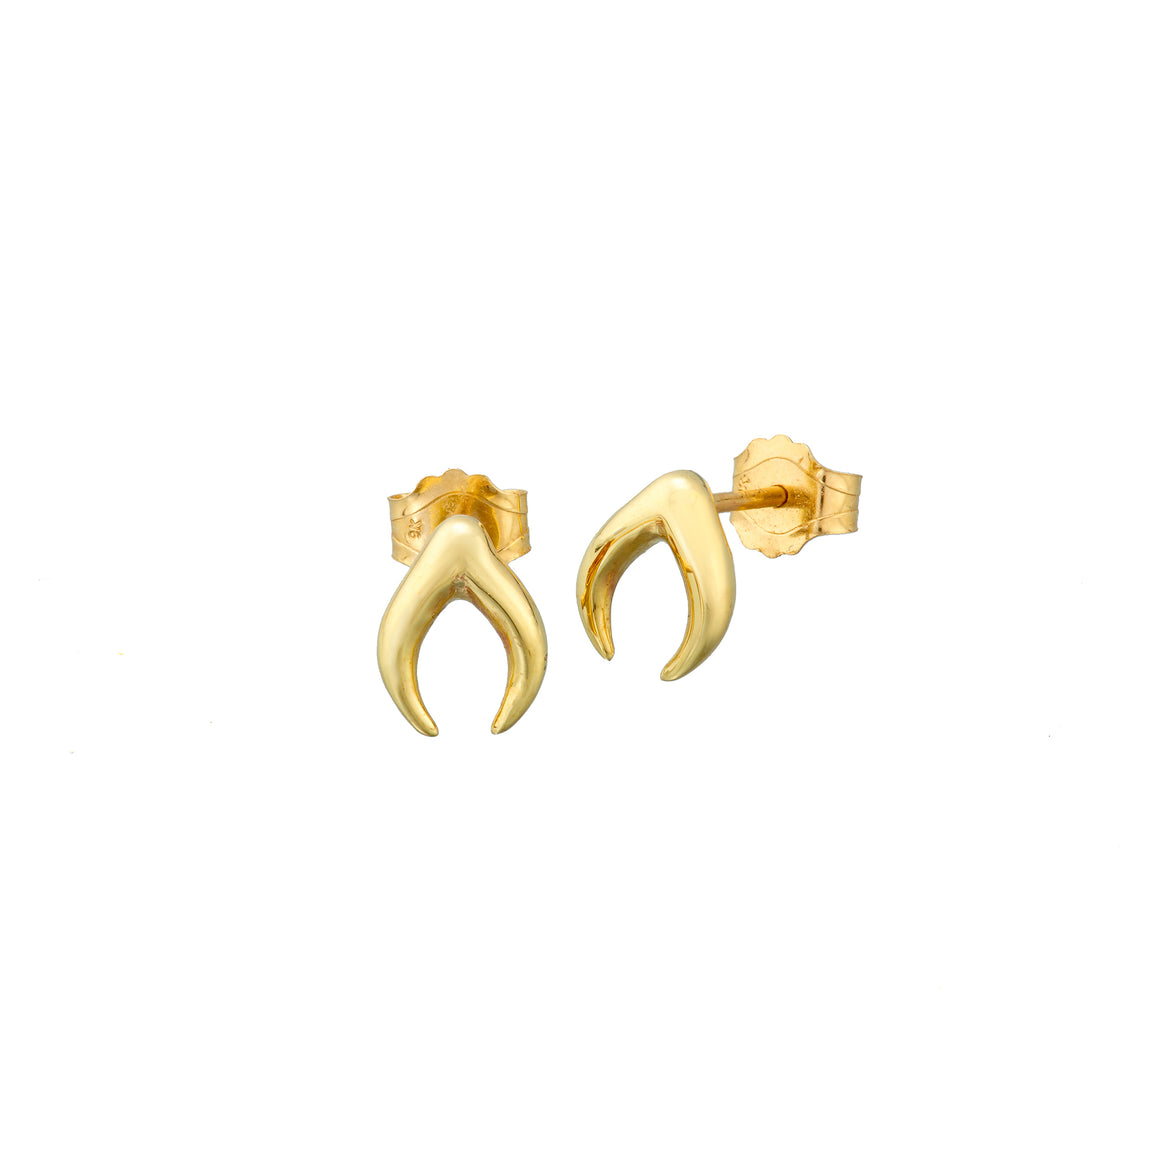 ella green jewellery irish designer yellow gold dream stud earrings insect jewelry